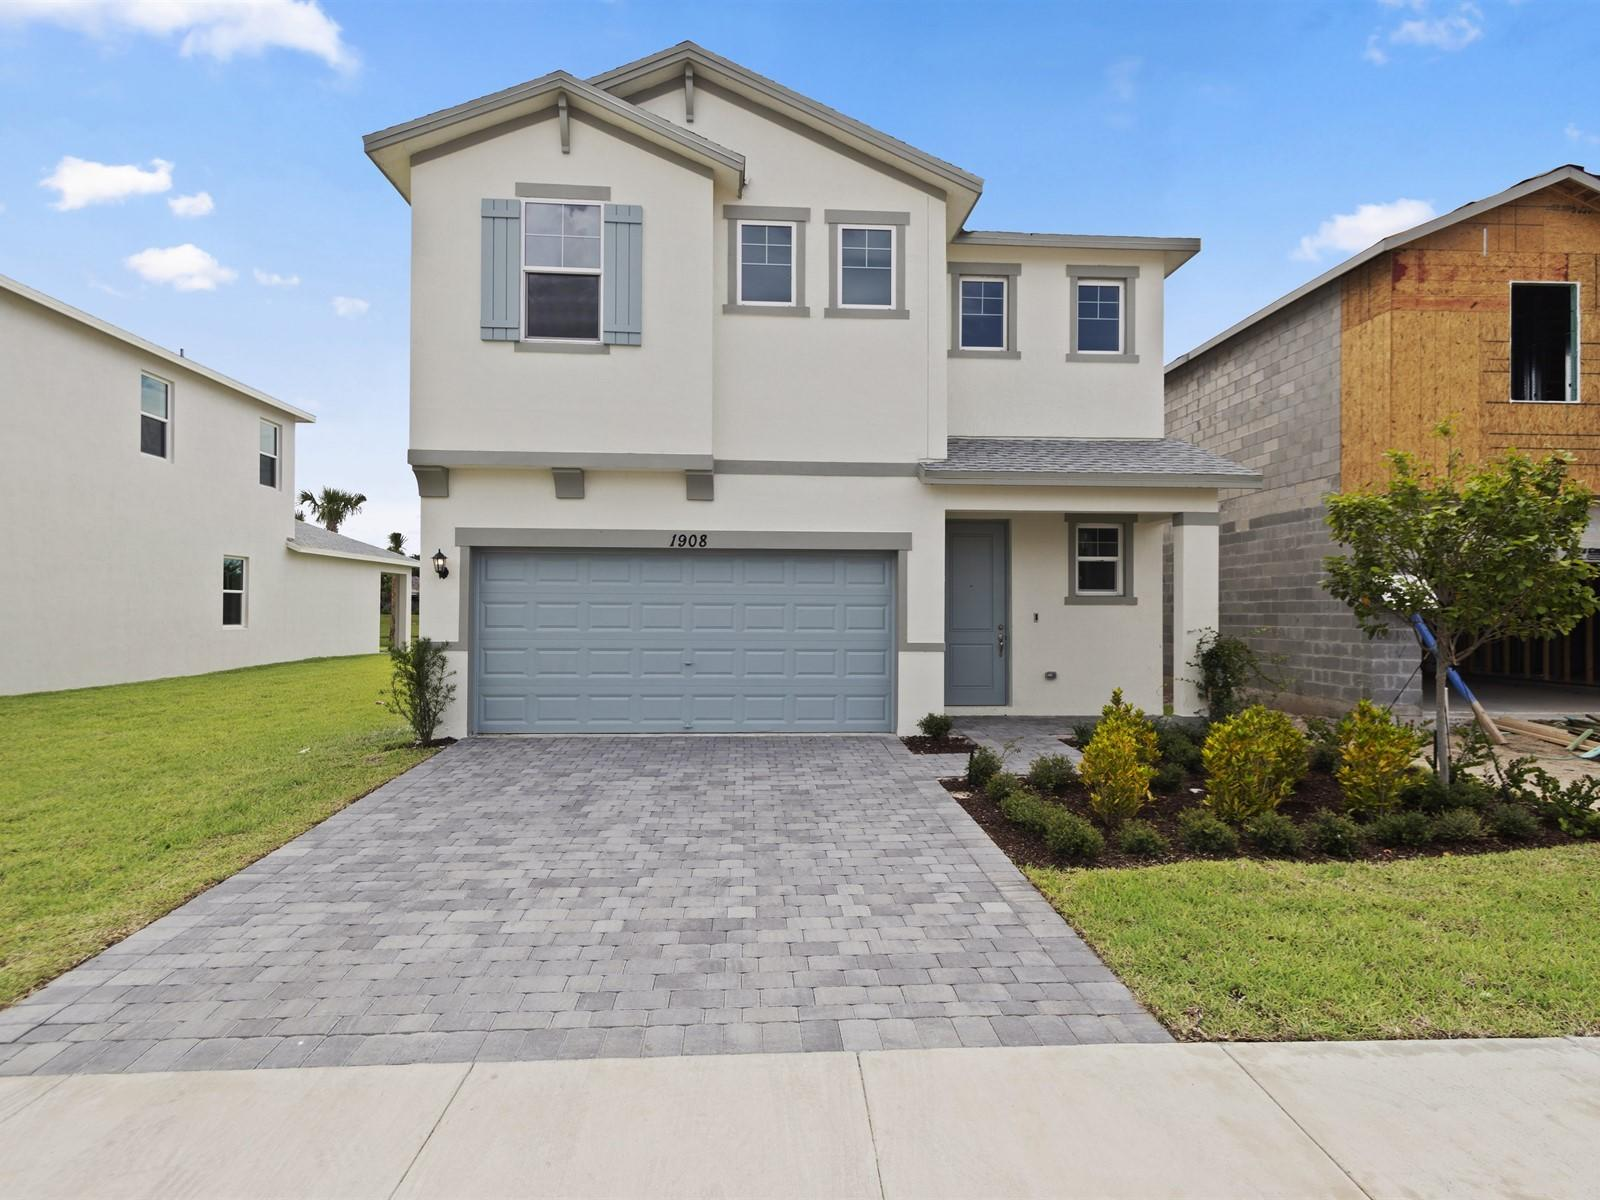 Photo of 1908 Harding Street, Lake Worth, FL 33460